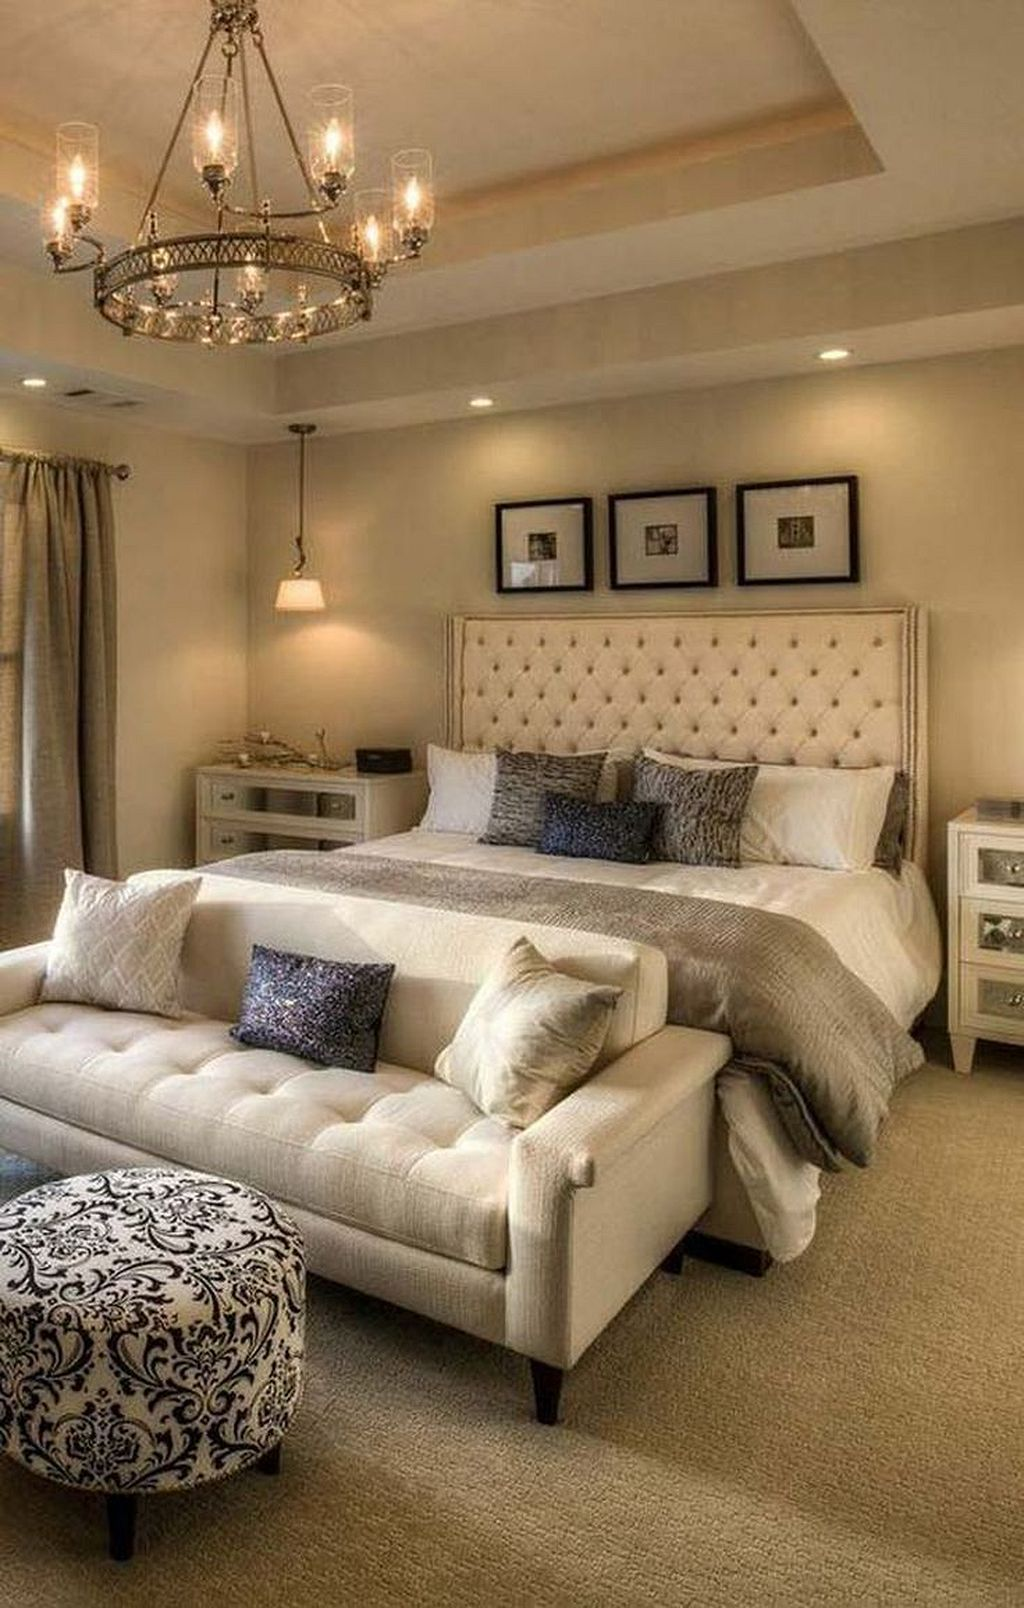 Awesome 50 Awesome Romantic Master Bedroom Design